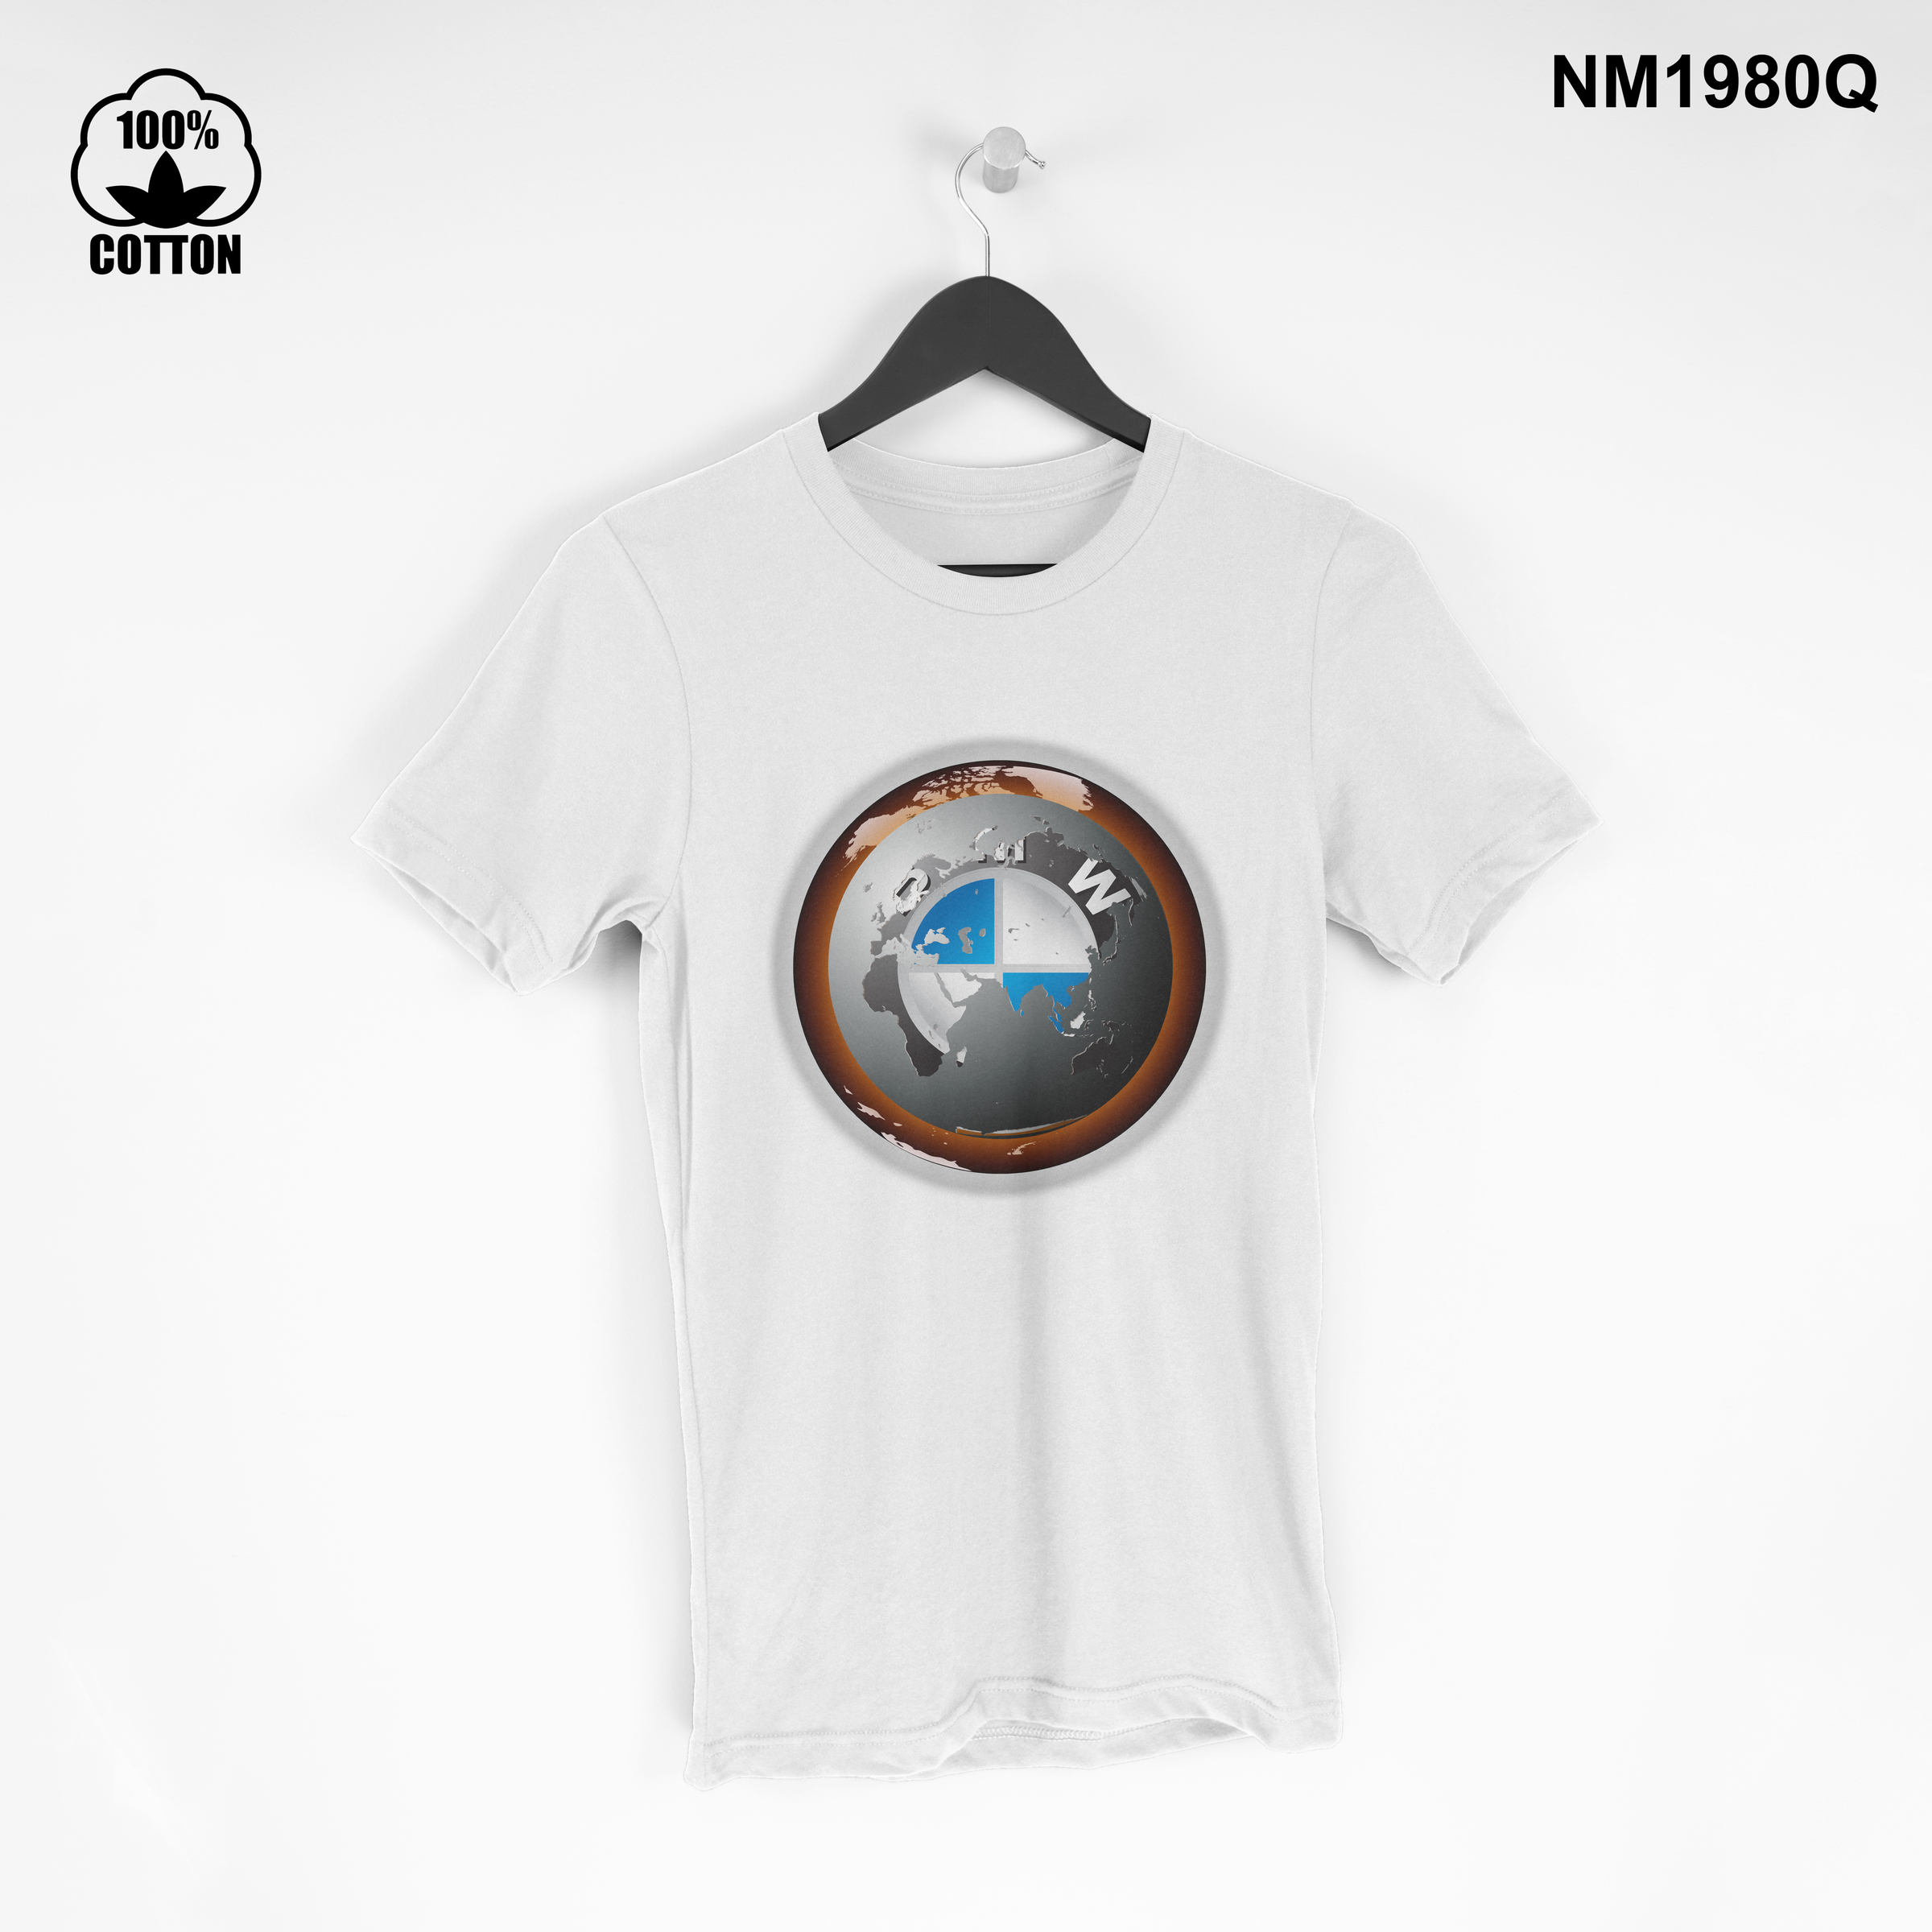 1.31 new item 2019 bmw in the world t Shirt Tee Unisex white.jpg